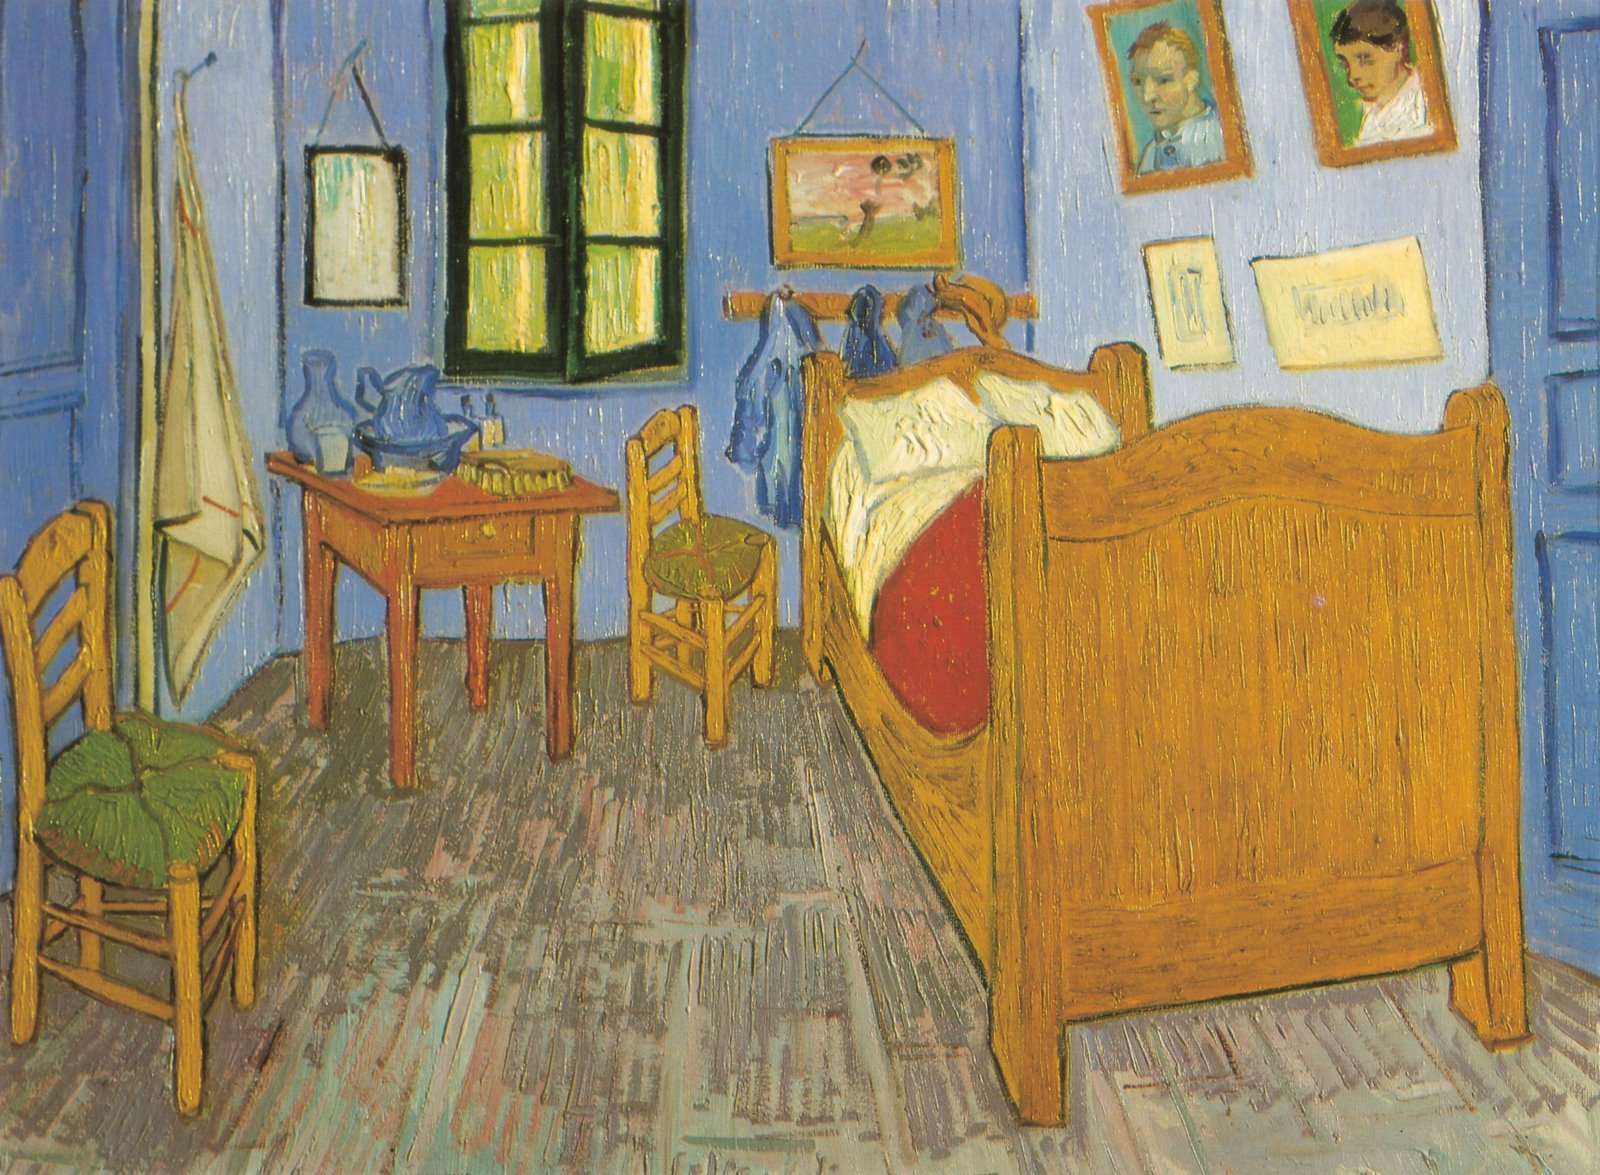 sauvage27: CAMERA DA LETTO (Bedroom in Arles) - Vincent Van Gogh